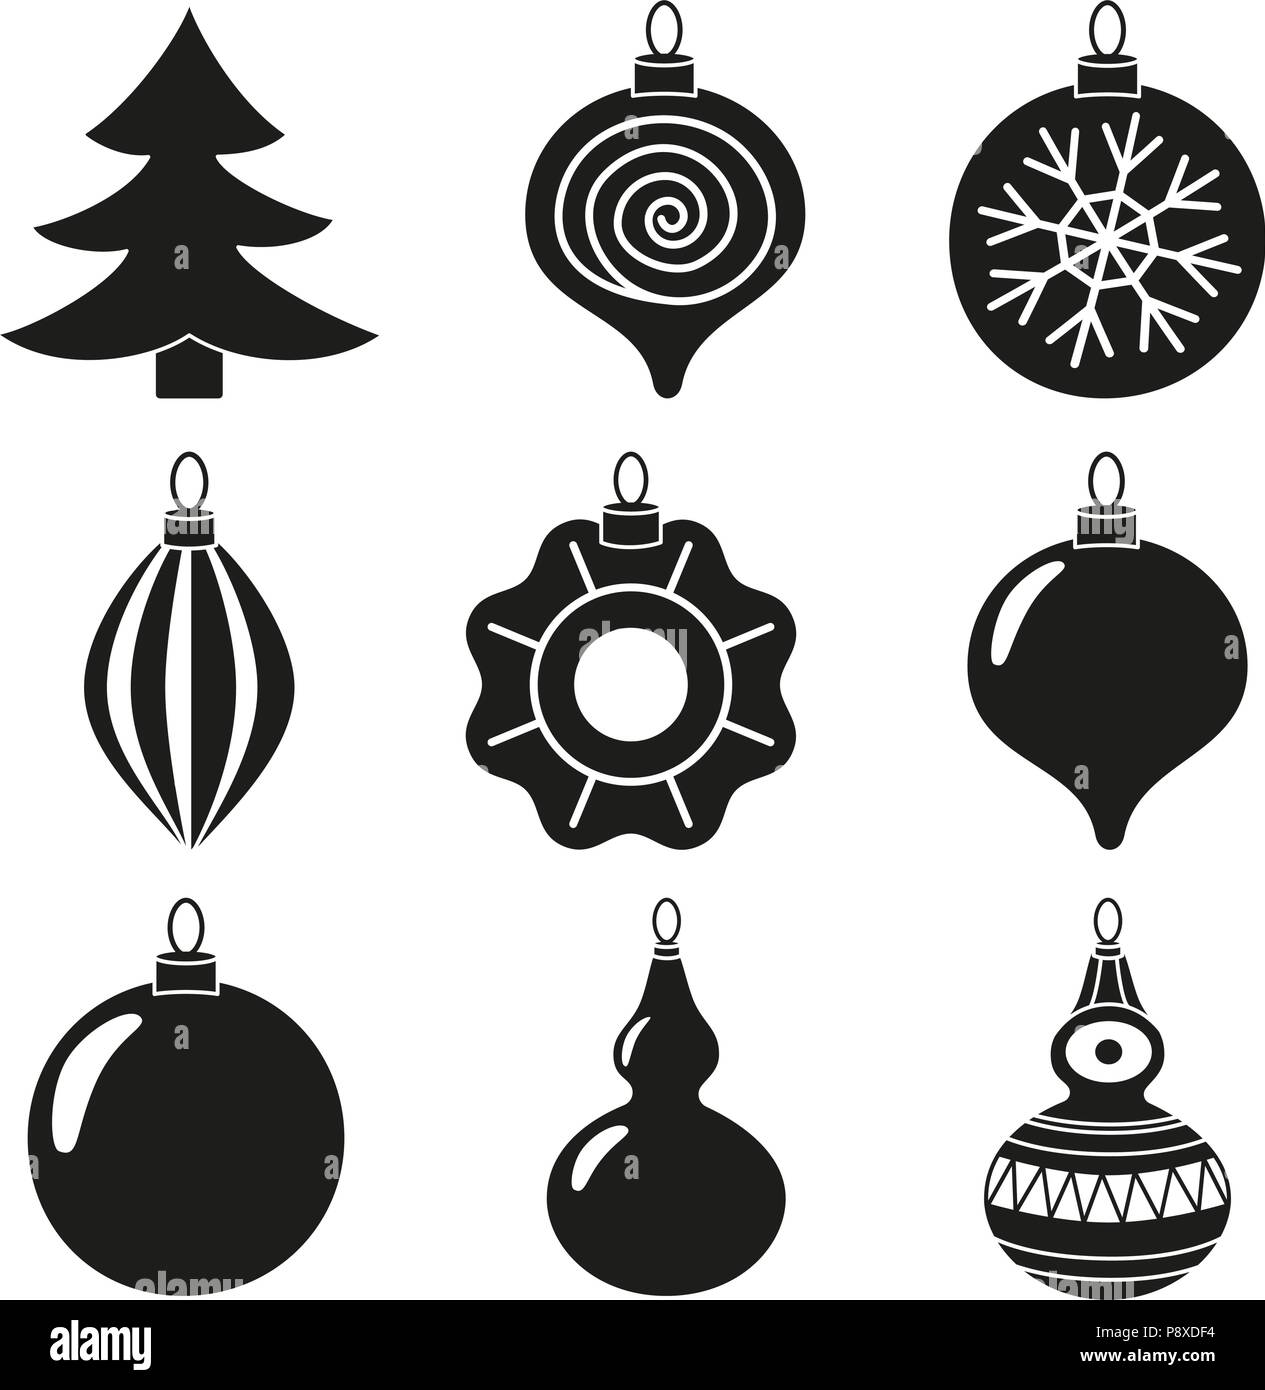 Black And White Xmas Tree Decoration Silhouette Set Holiday Themed Vector Illustration For Icon Sticker Patch Label Sign Badge Certificate Or G Stock Vector Image Art Alamy